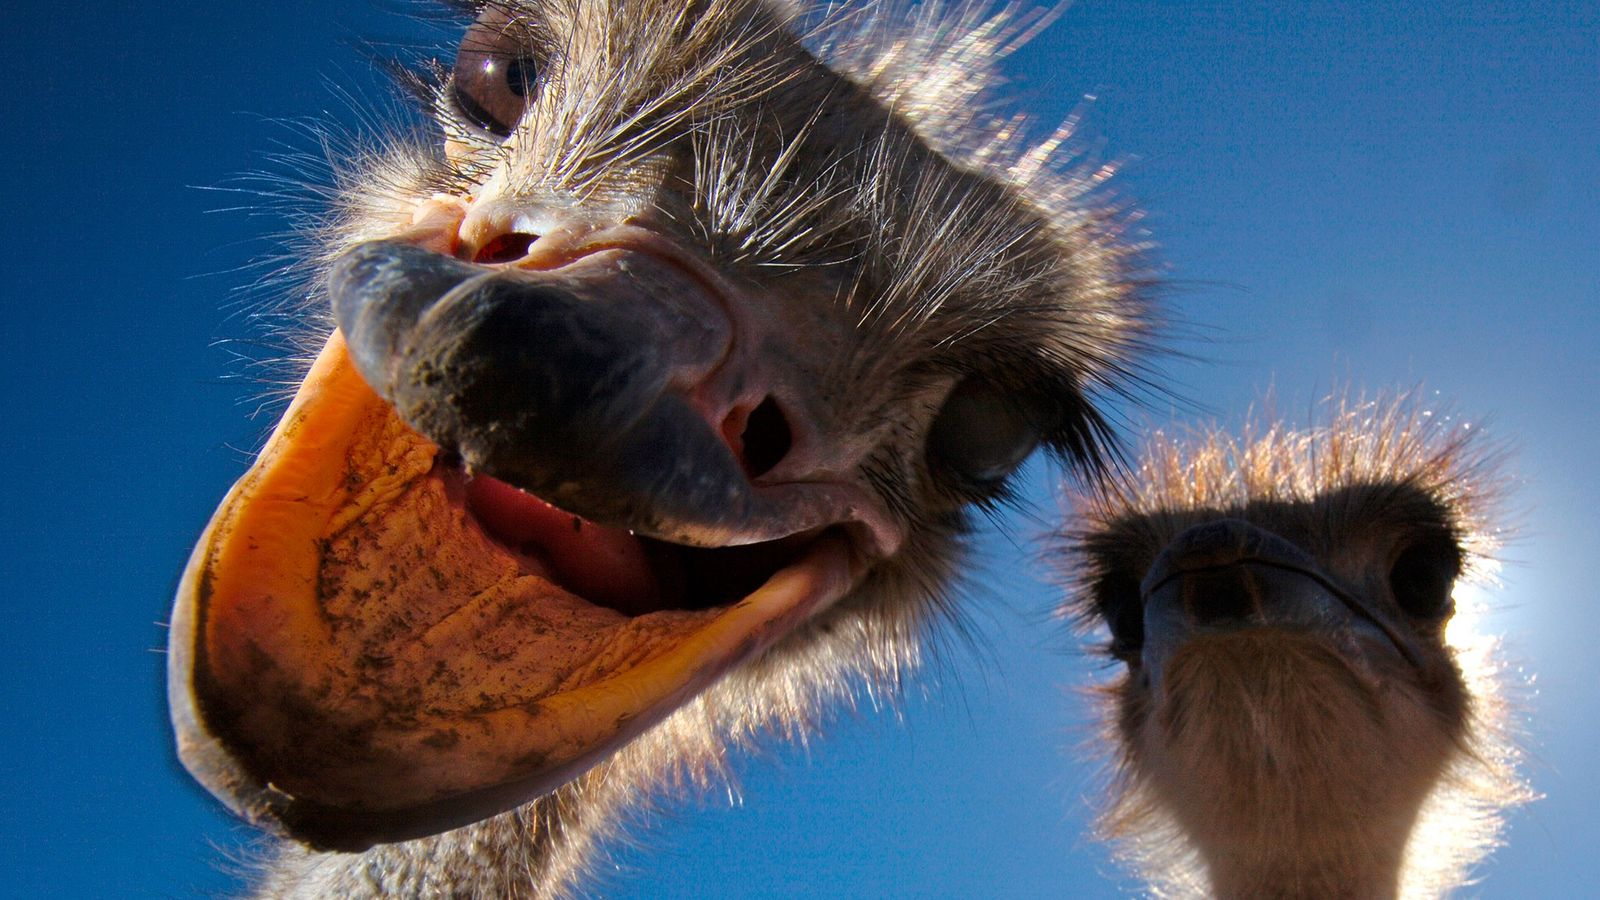 Ostriches, South Africa.